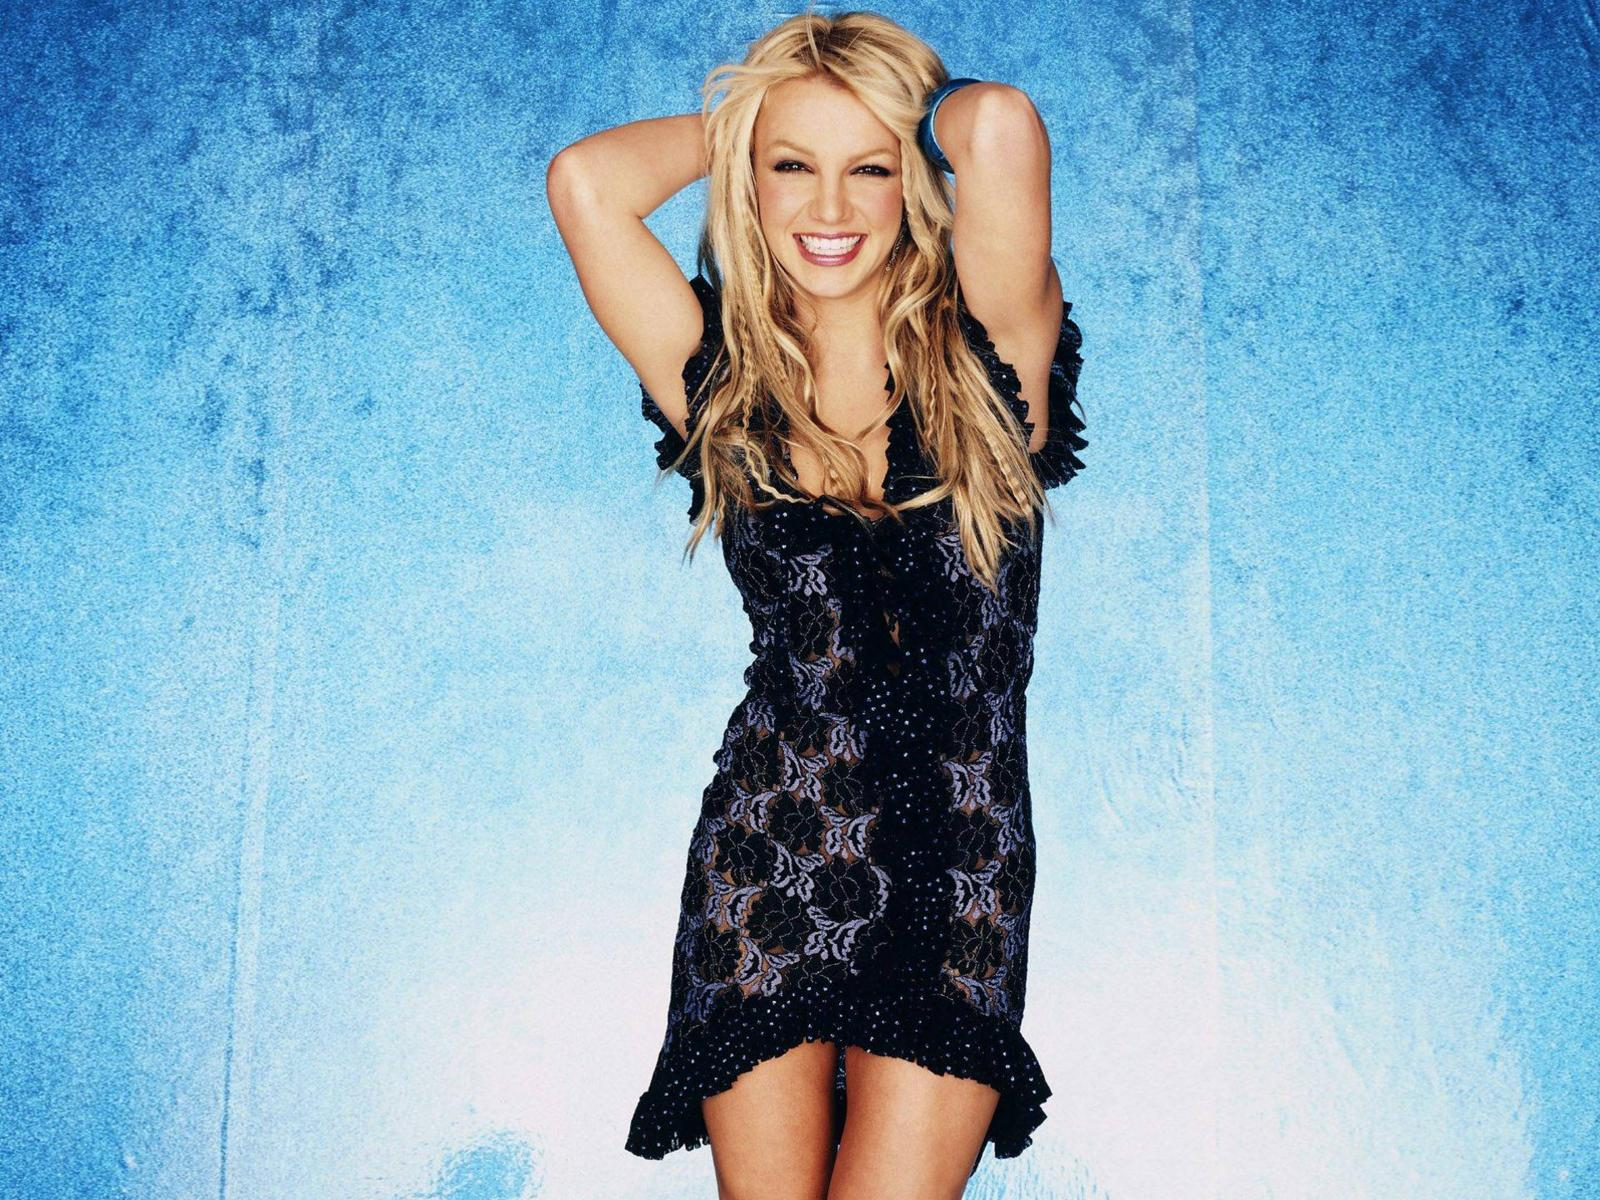 http://3.bp.blogspot.com/-VE5rE1FDeYM/TZDNPzCRxkI/AAAAAAAAHvU/Xij-5dFsC7M/s1600/The-best-top-desktop-britney-spears-wallpapers-Hottest%2525252BBritney%2525252BSpears%2525252BHD%2525252BDesktop%2525252Bwallpapers-hot-nude-sexy-topless-britney-spears-hd-wallpapers-global-top-actress-nude-sexy-big-ass-big-boobs-actress-model-1.jpg